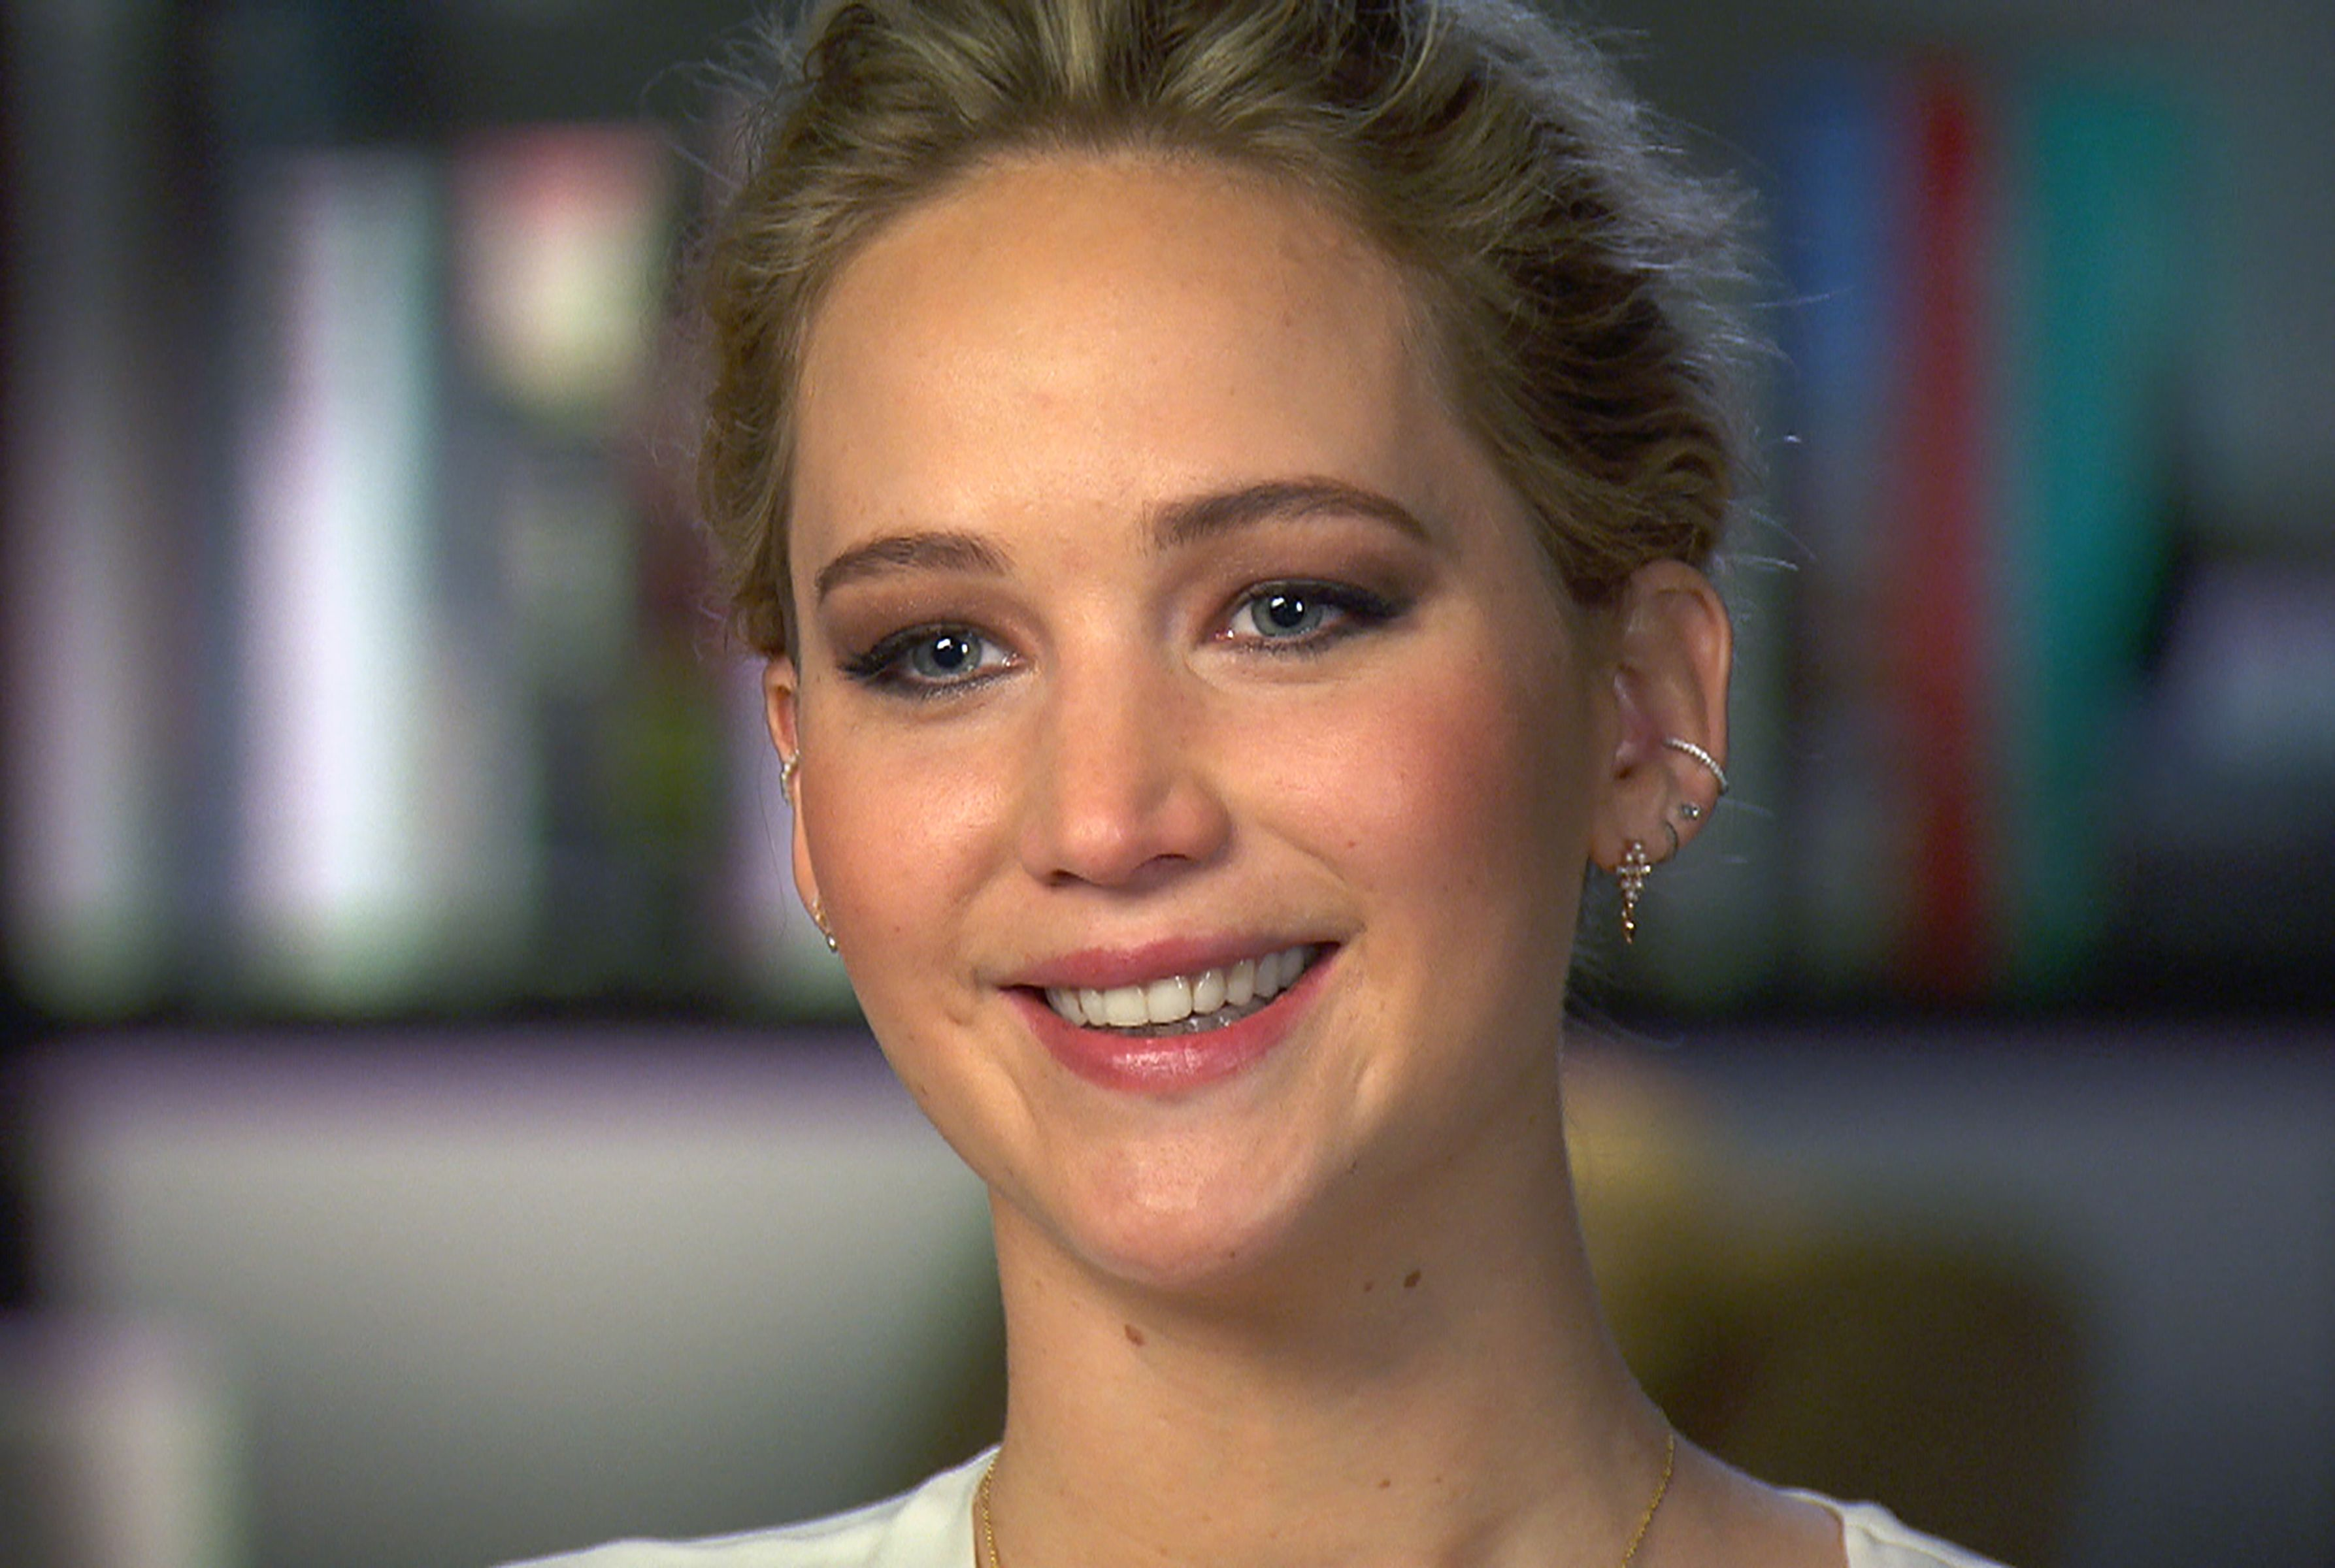 Who is jennifer lawrence dating june 2020